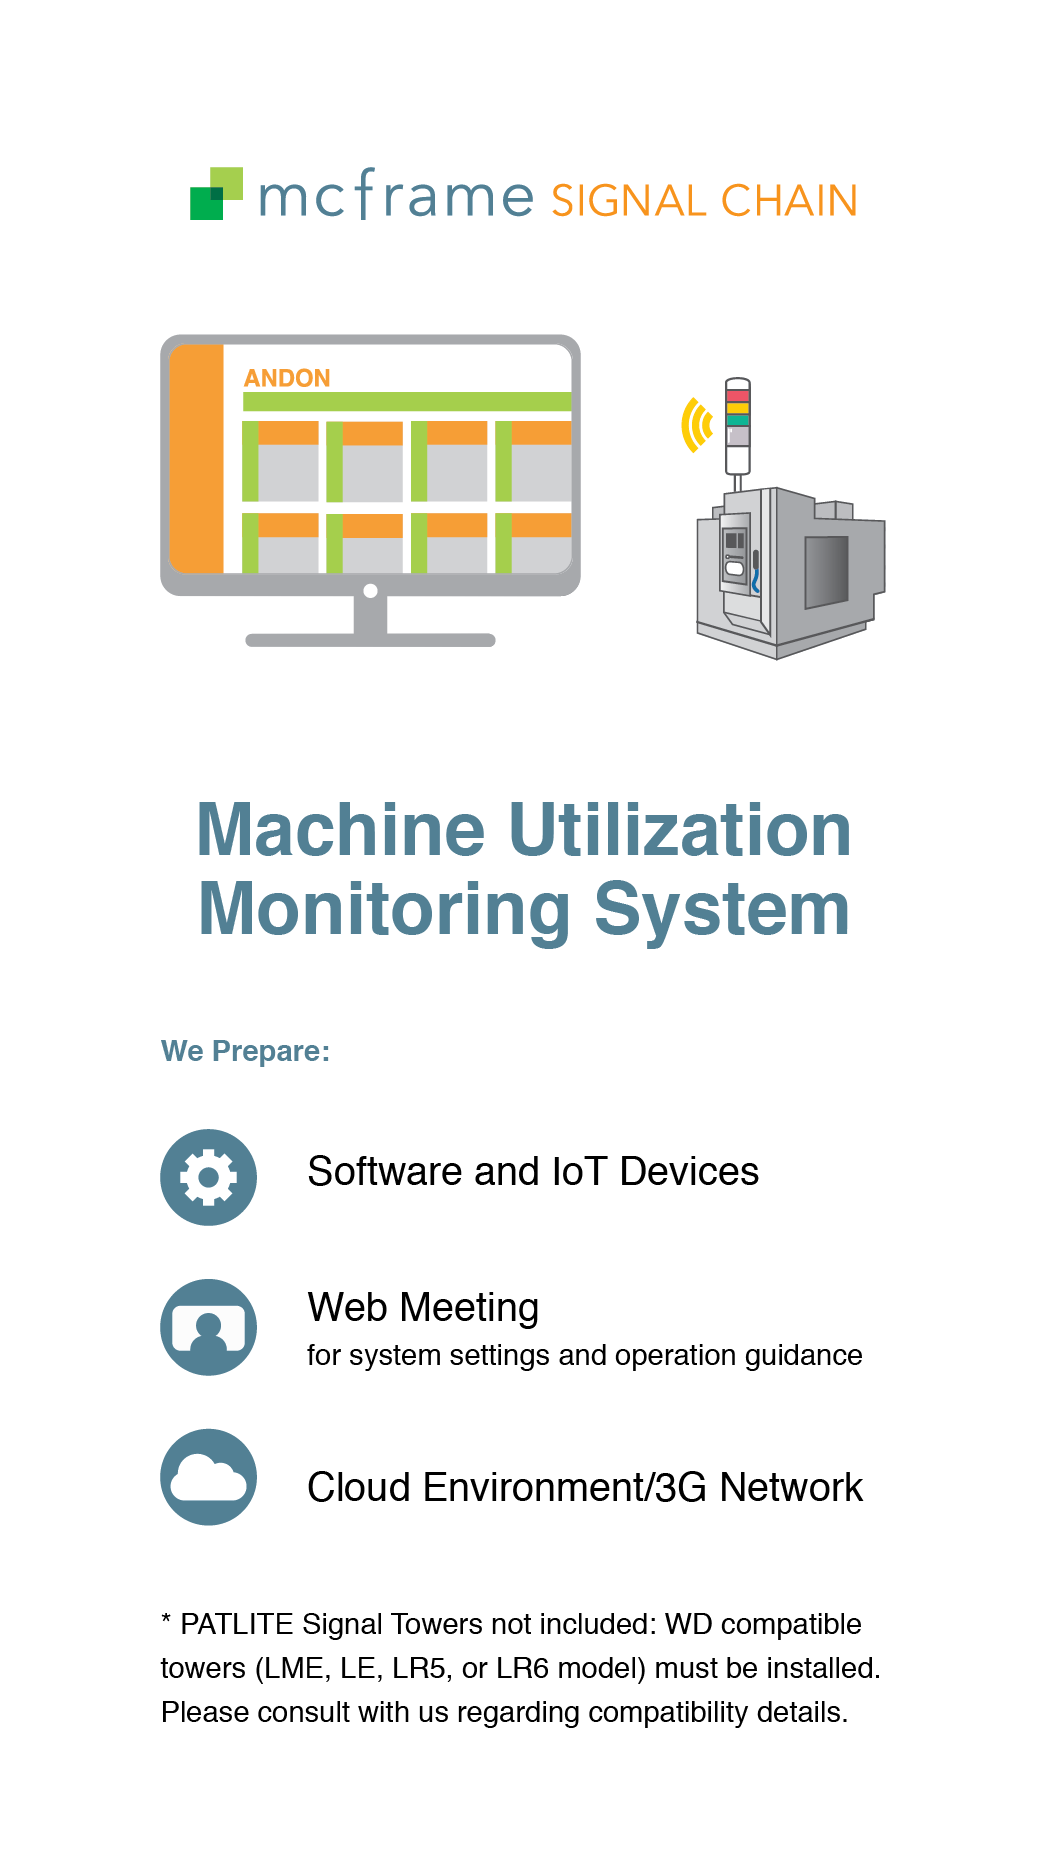 Trial for mcframe SIGNAL CHAIN Machine Utilization Monitoring System